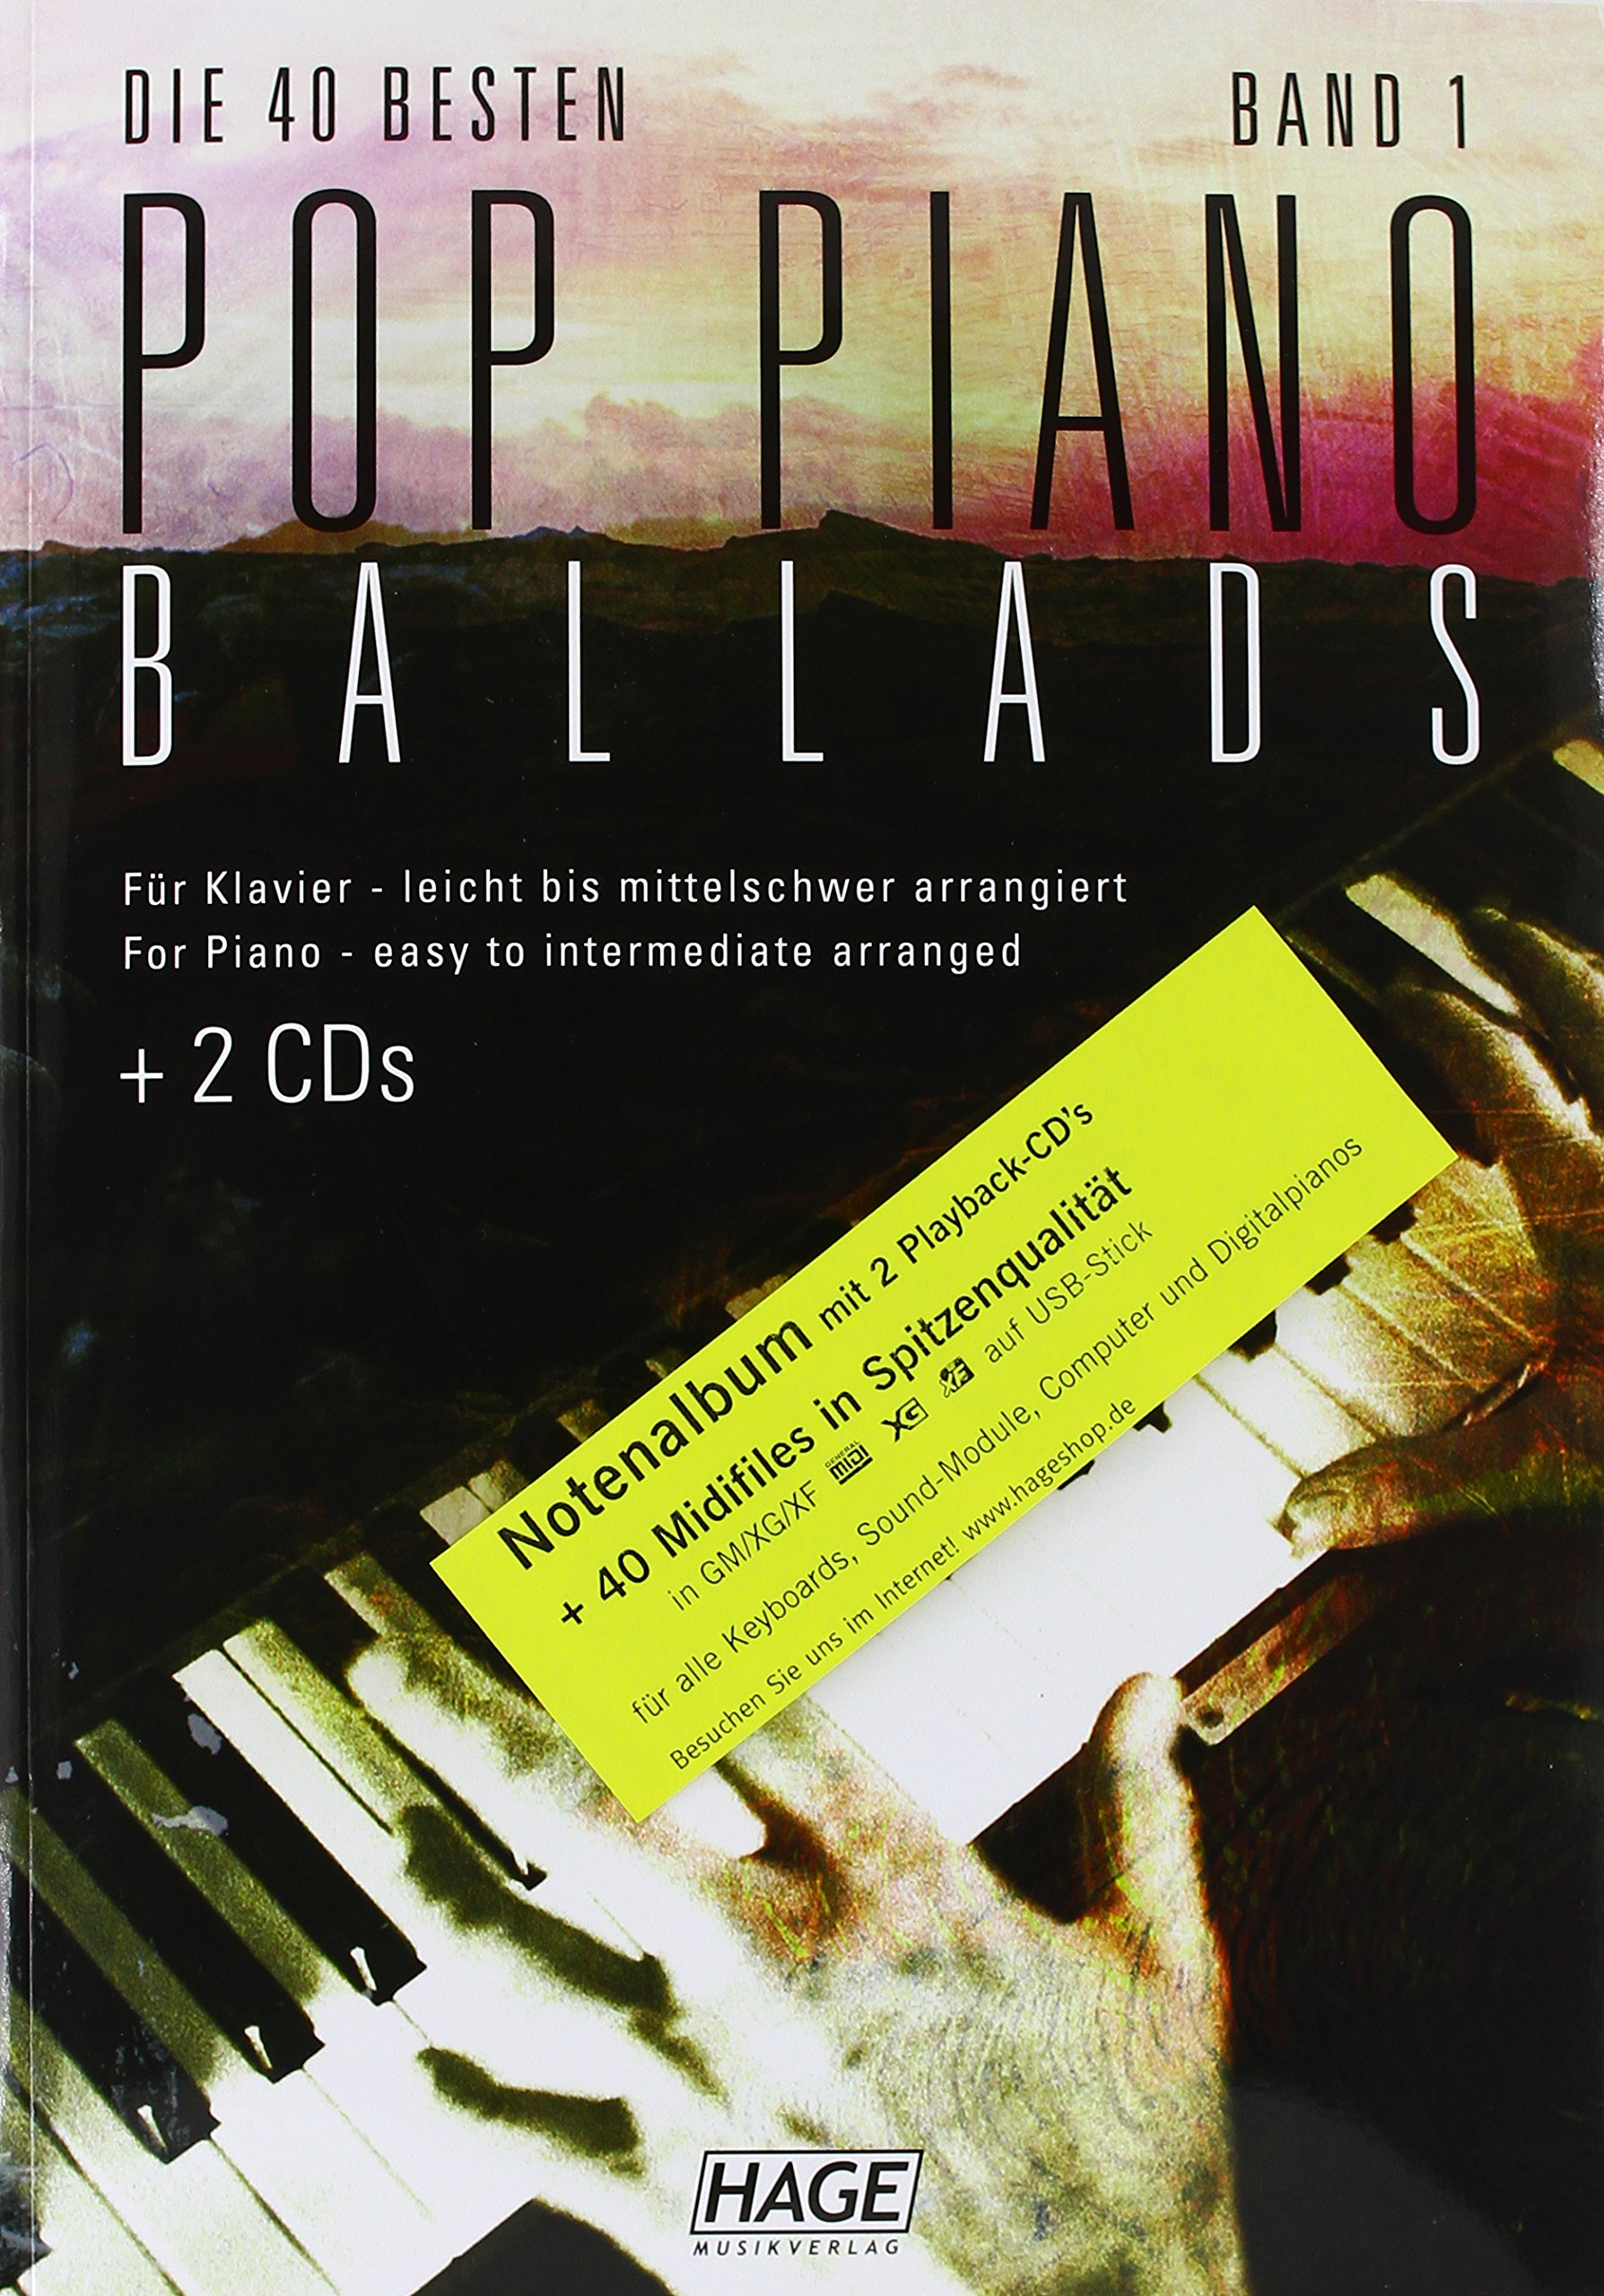 Pop Piano Ballads 1 (mit CD + Midifiles, USB-Stick): 9783866261525